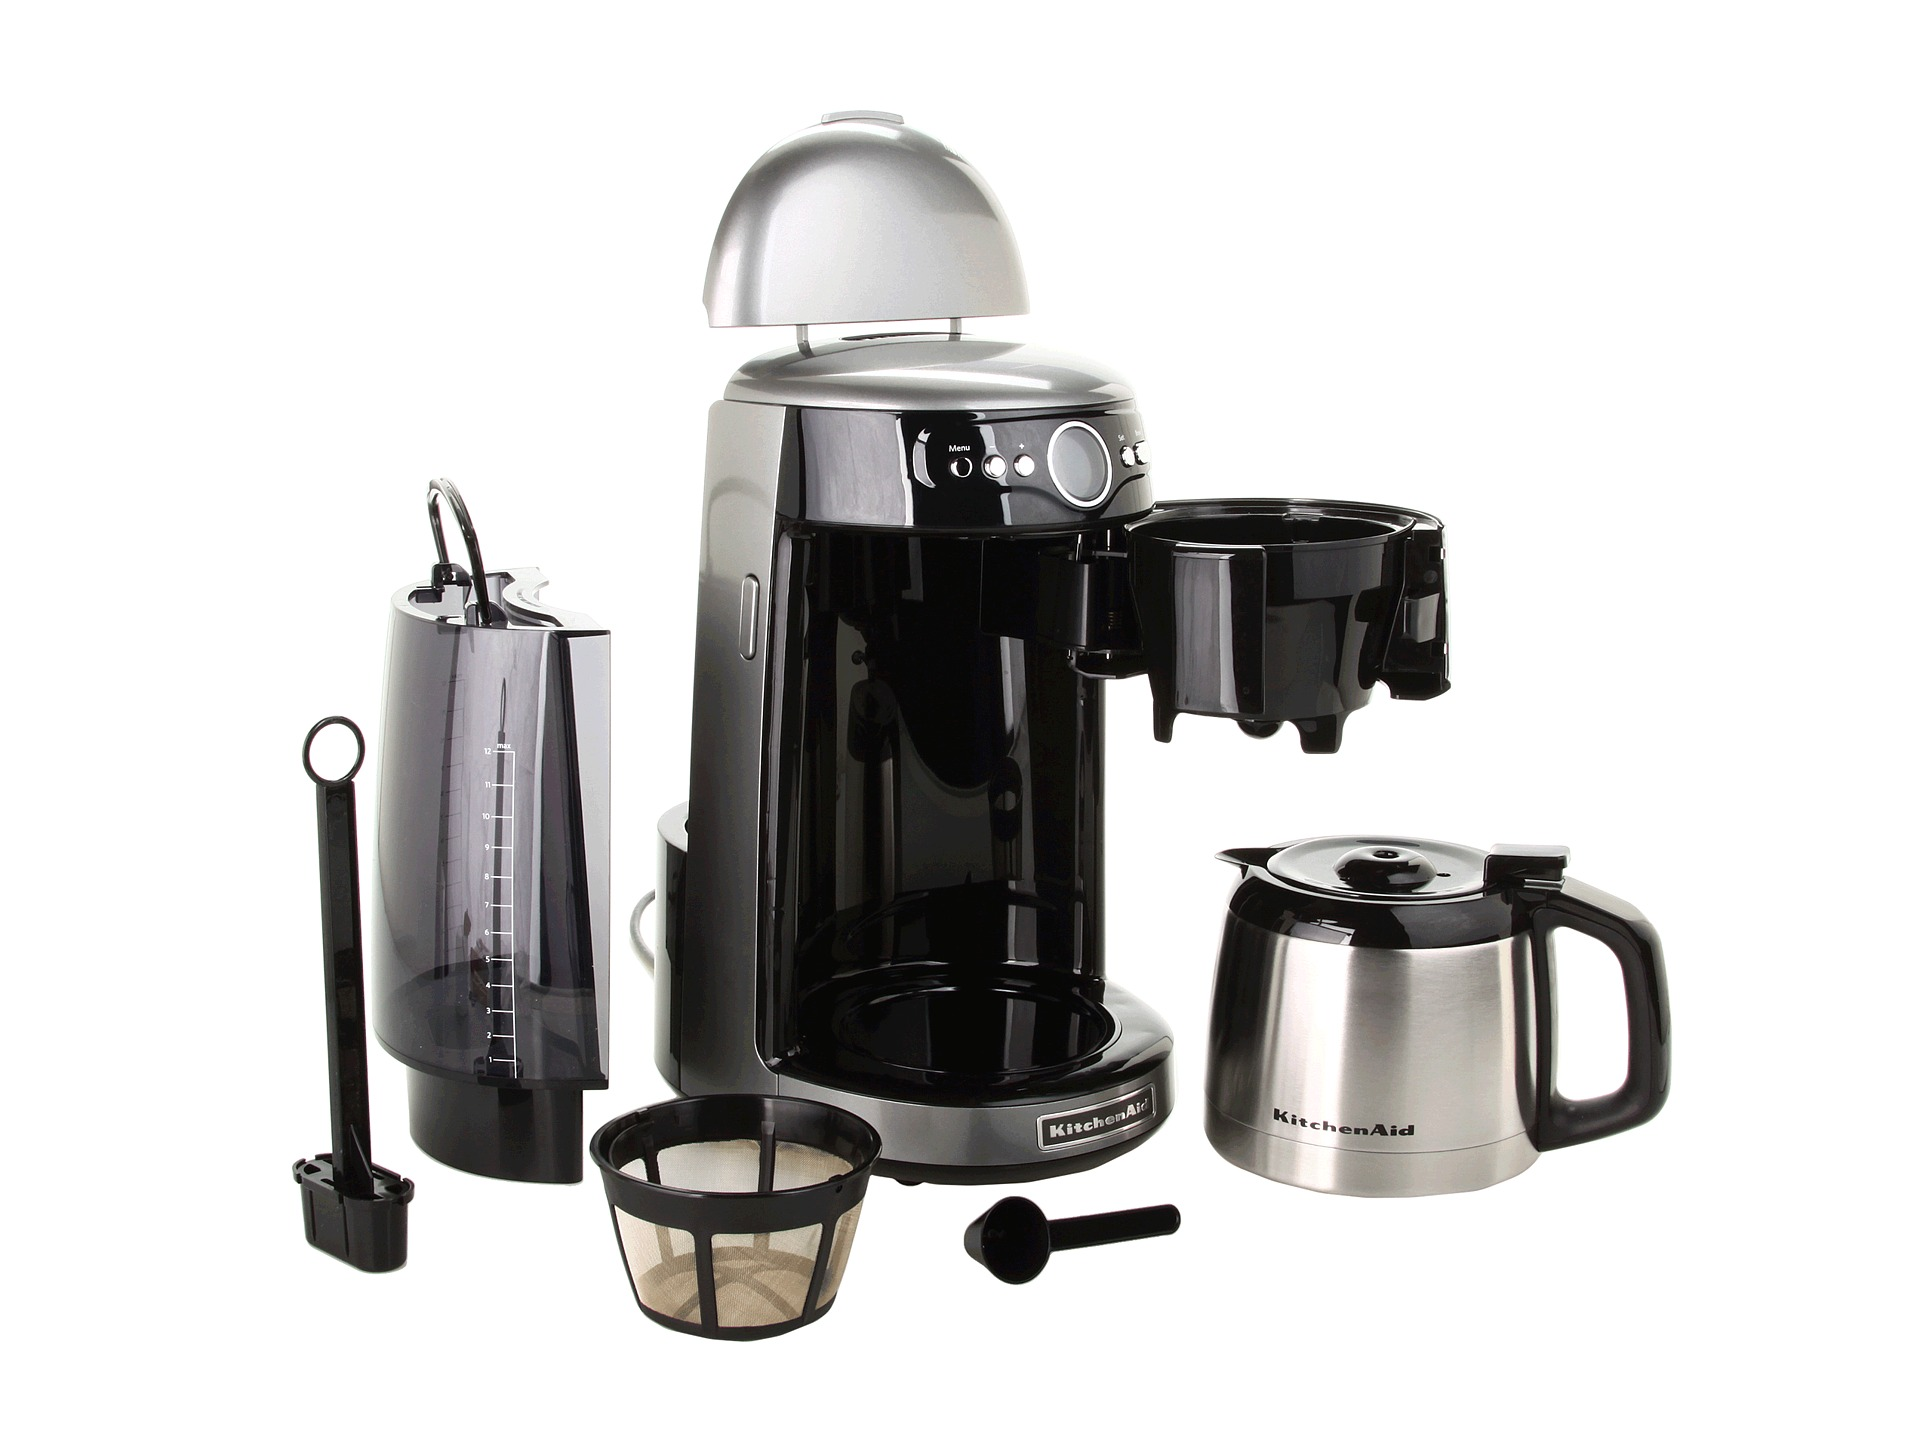 Kitchenaid 12 Cup Thermal Coffee Maker Shipped Free at Zappos